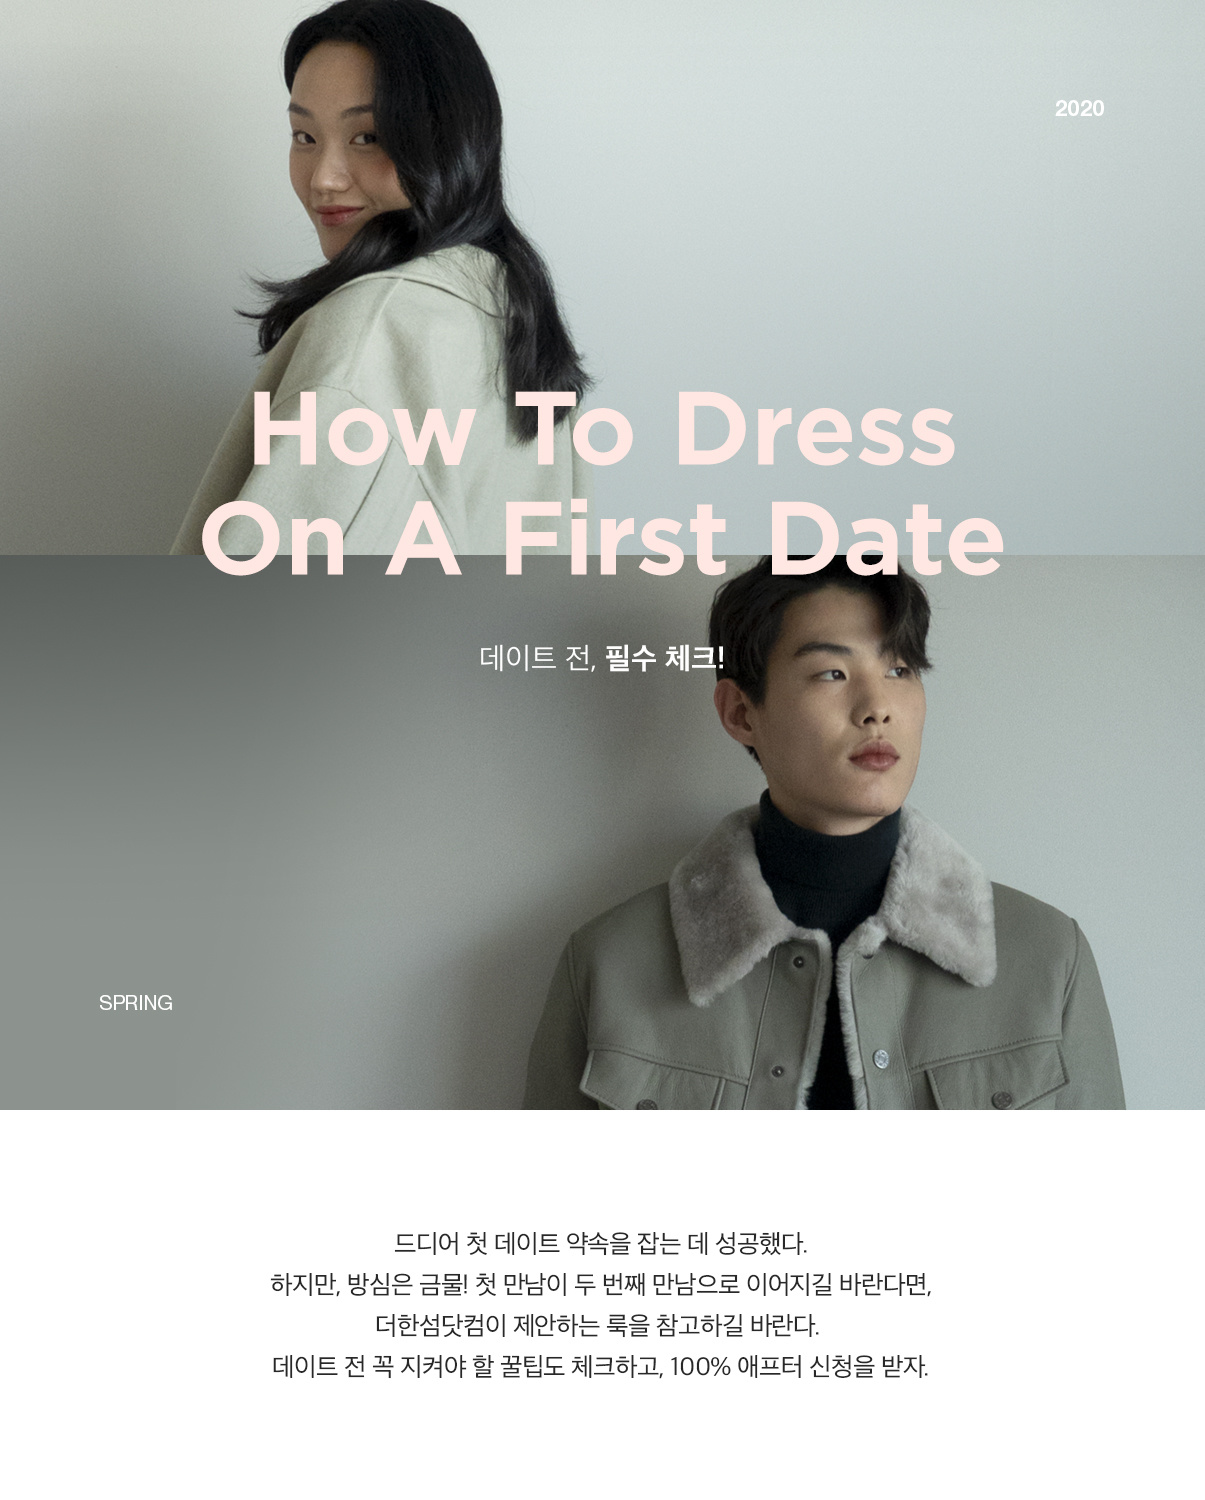 How To Dress On A First Date